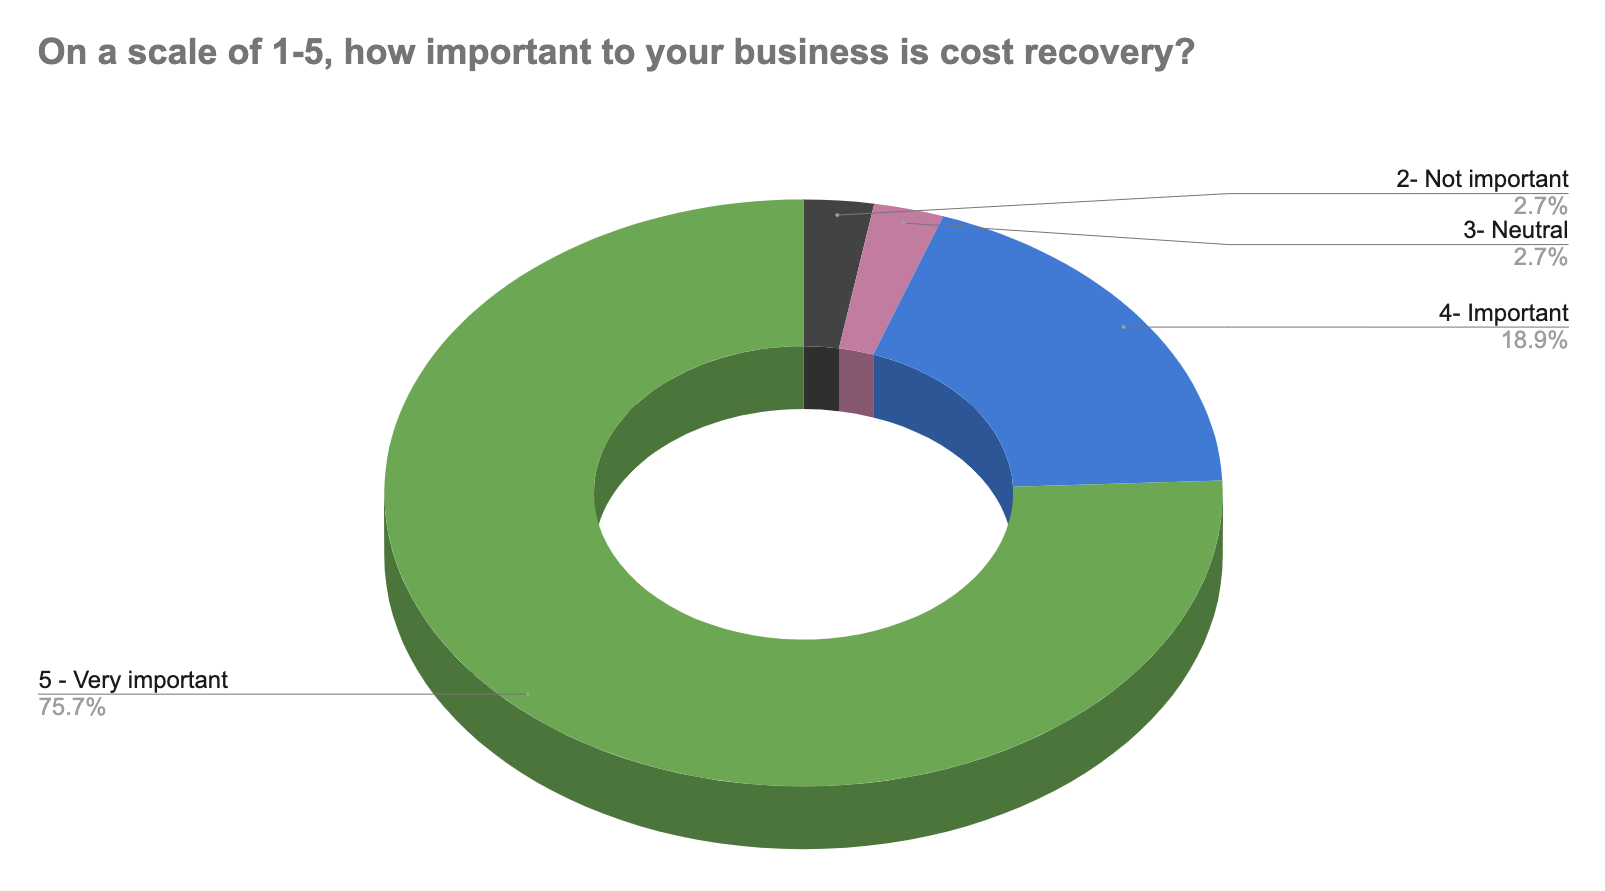 A chart showing how webinar attendees responded to a question about the importance of cost recovery to their business. 75.7% said recovering costs was very important. Another 19% said it was important. About 3% were neutral, and another 3% said cost recovery was not important to their business.